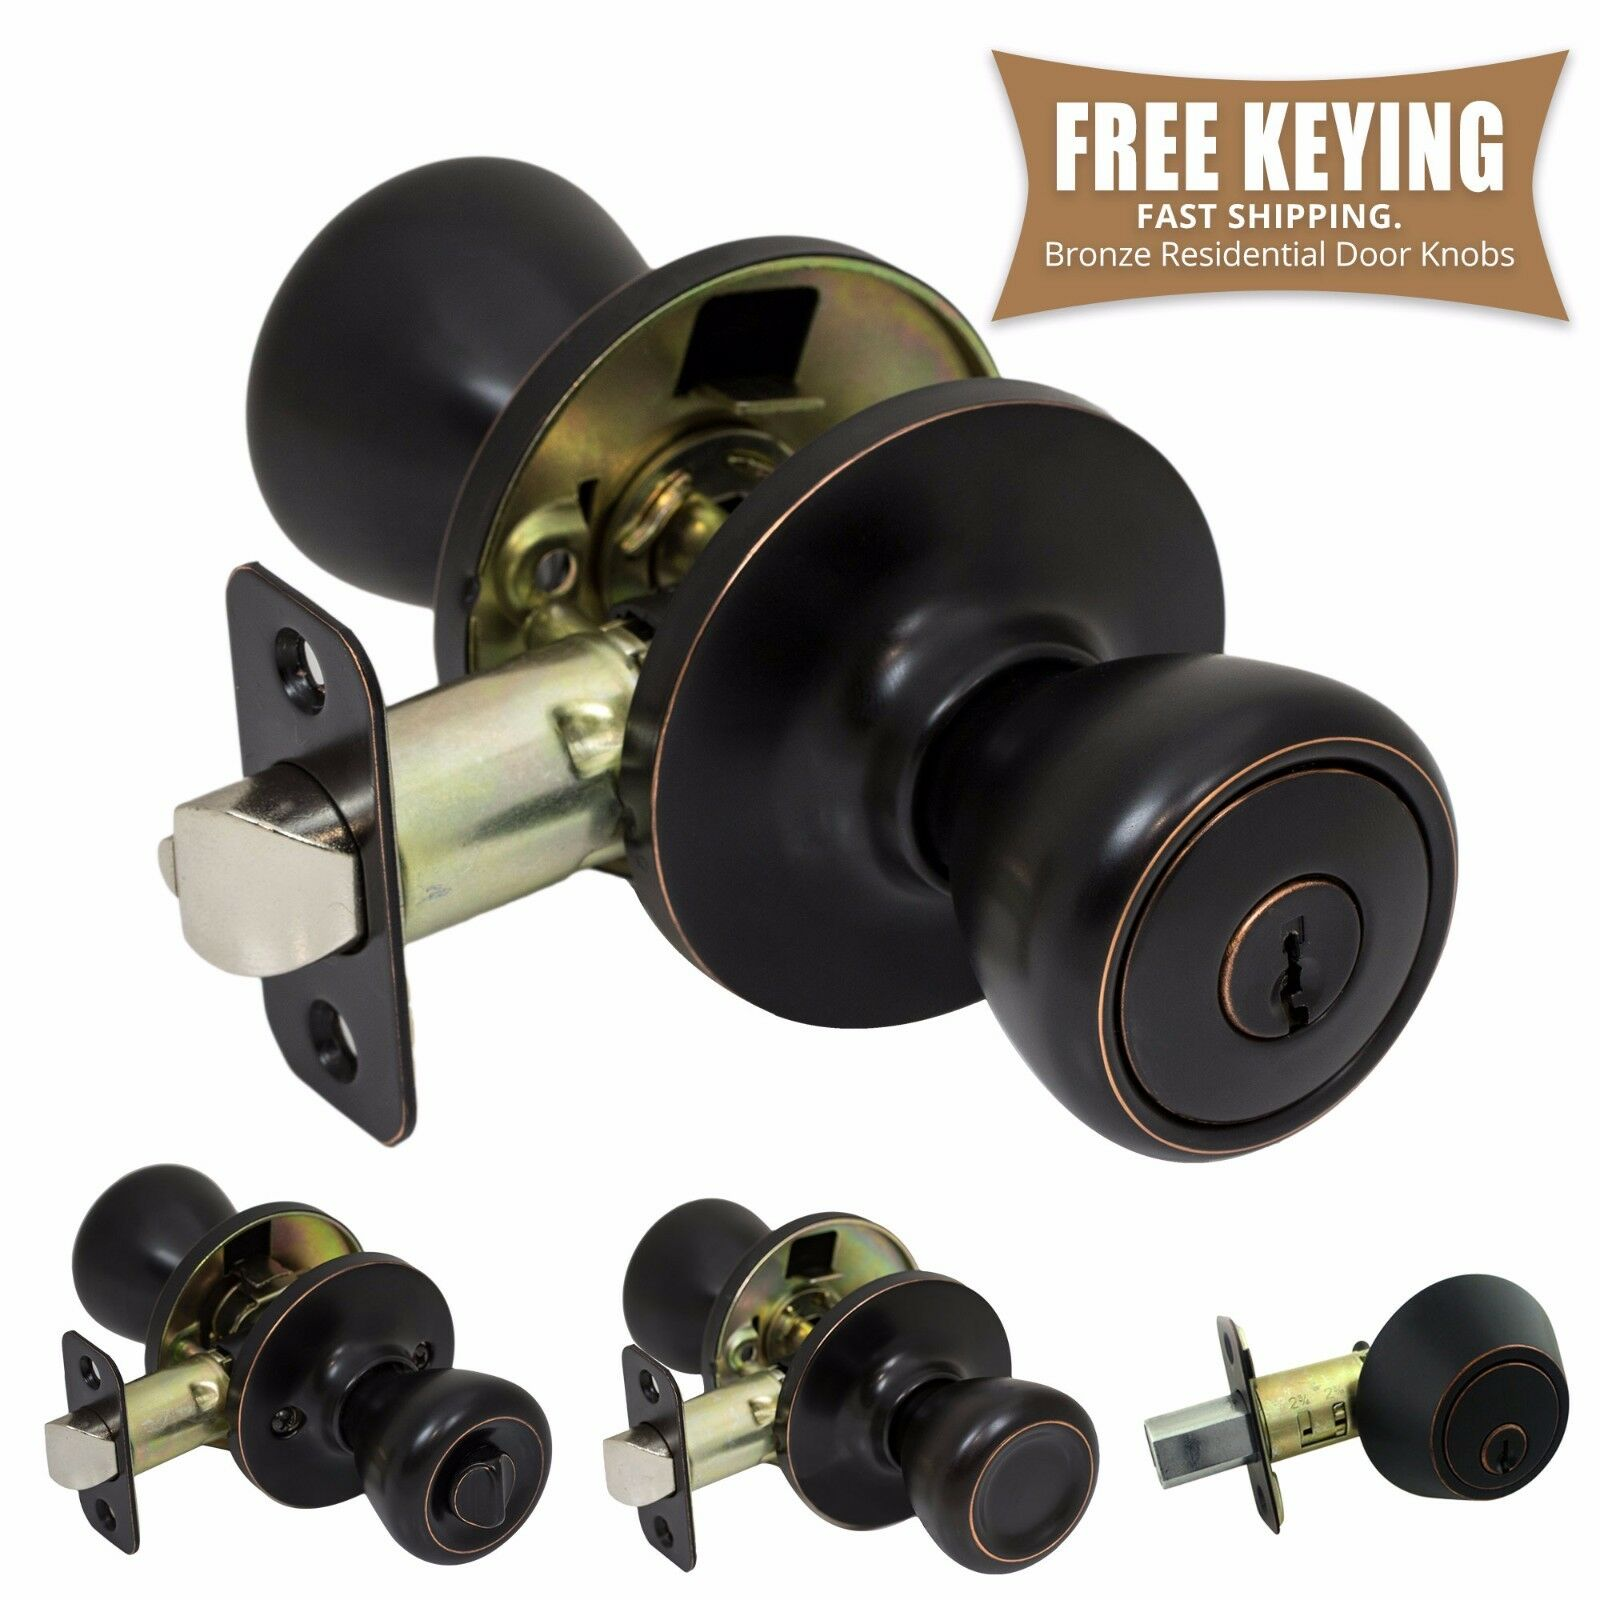 Pro-Grade Classic Door Knob Handle Keyed Entry Home Hardware, Oil Rubbed Bronze Building & Hardware